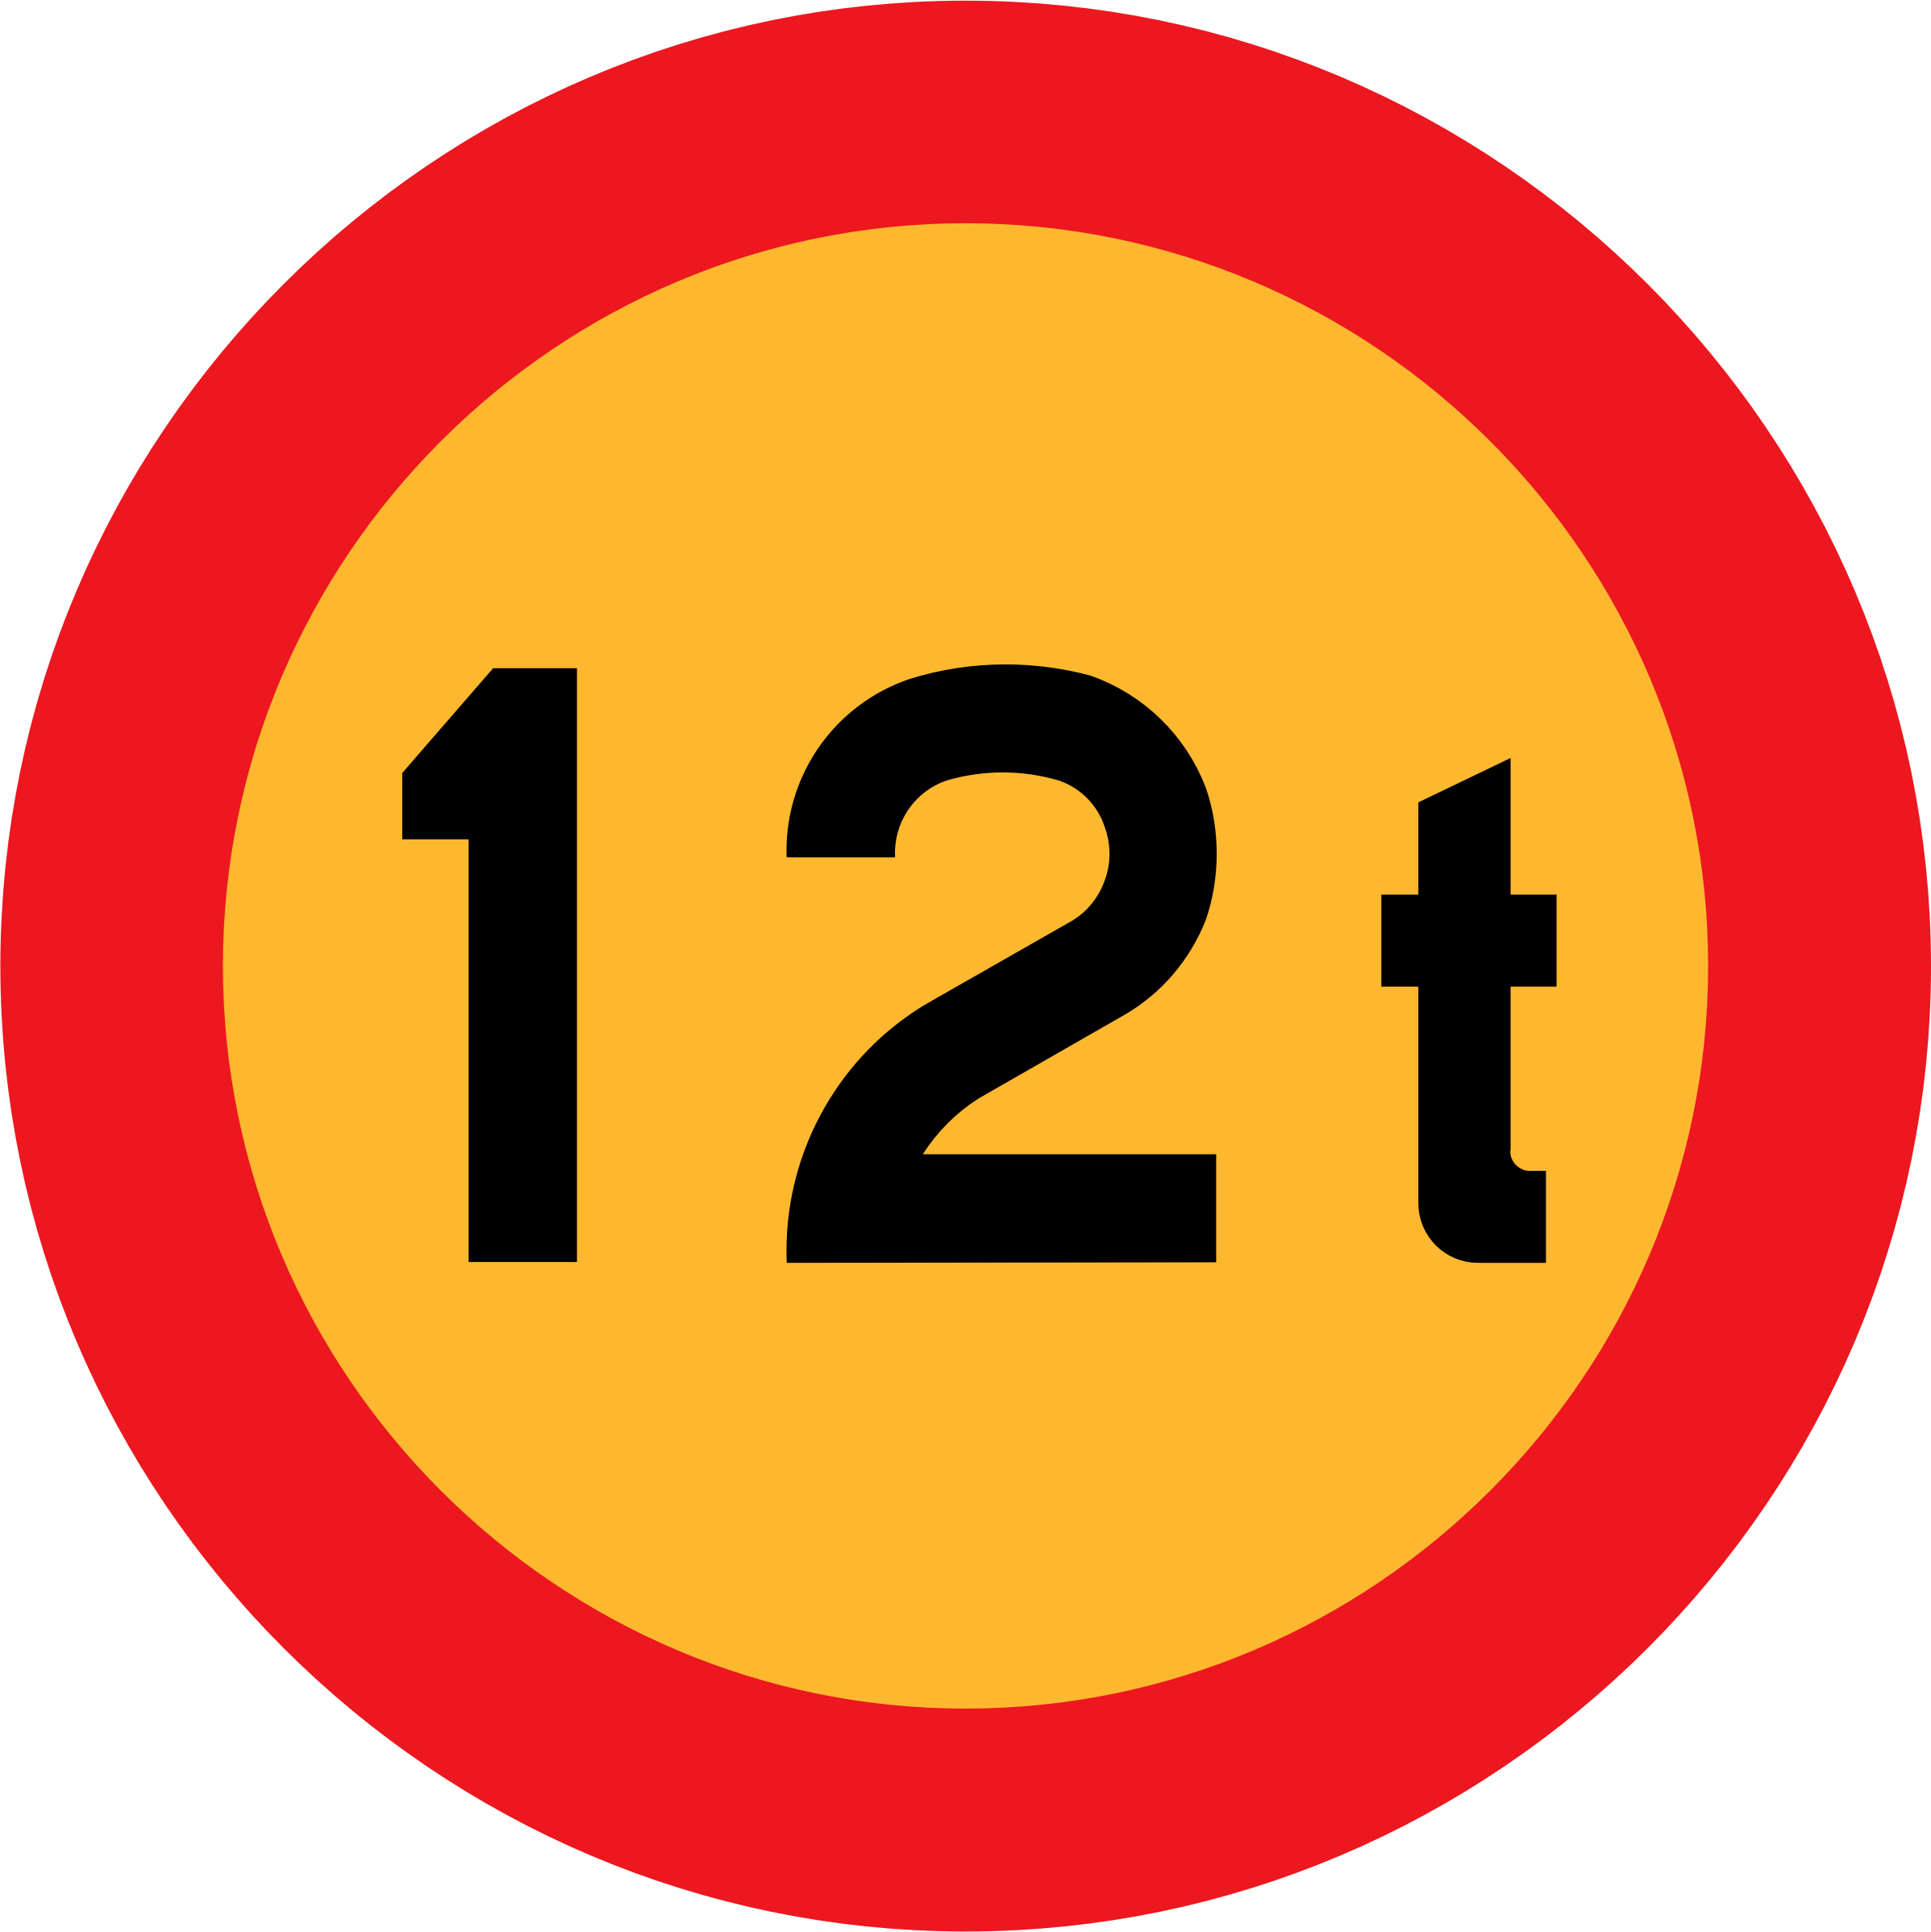 12t sign by ryanlerch